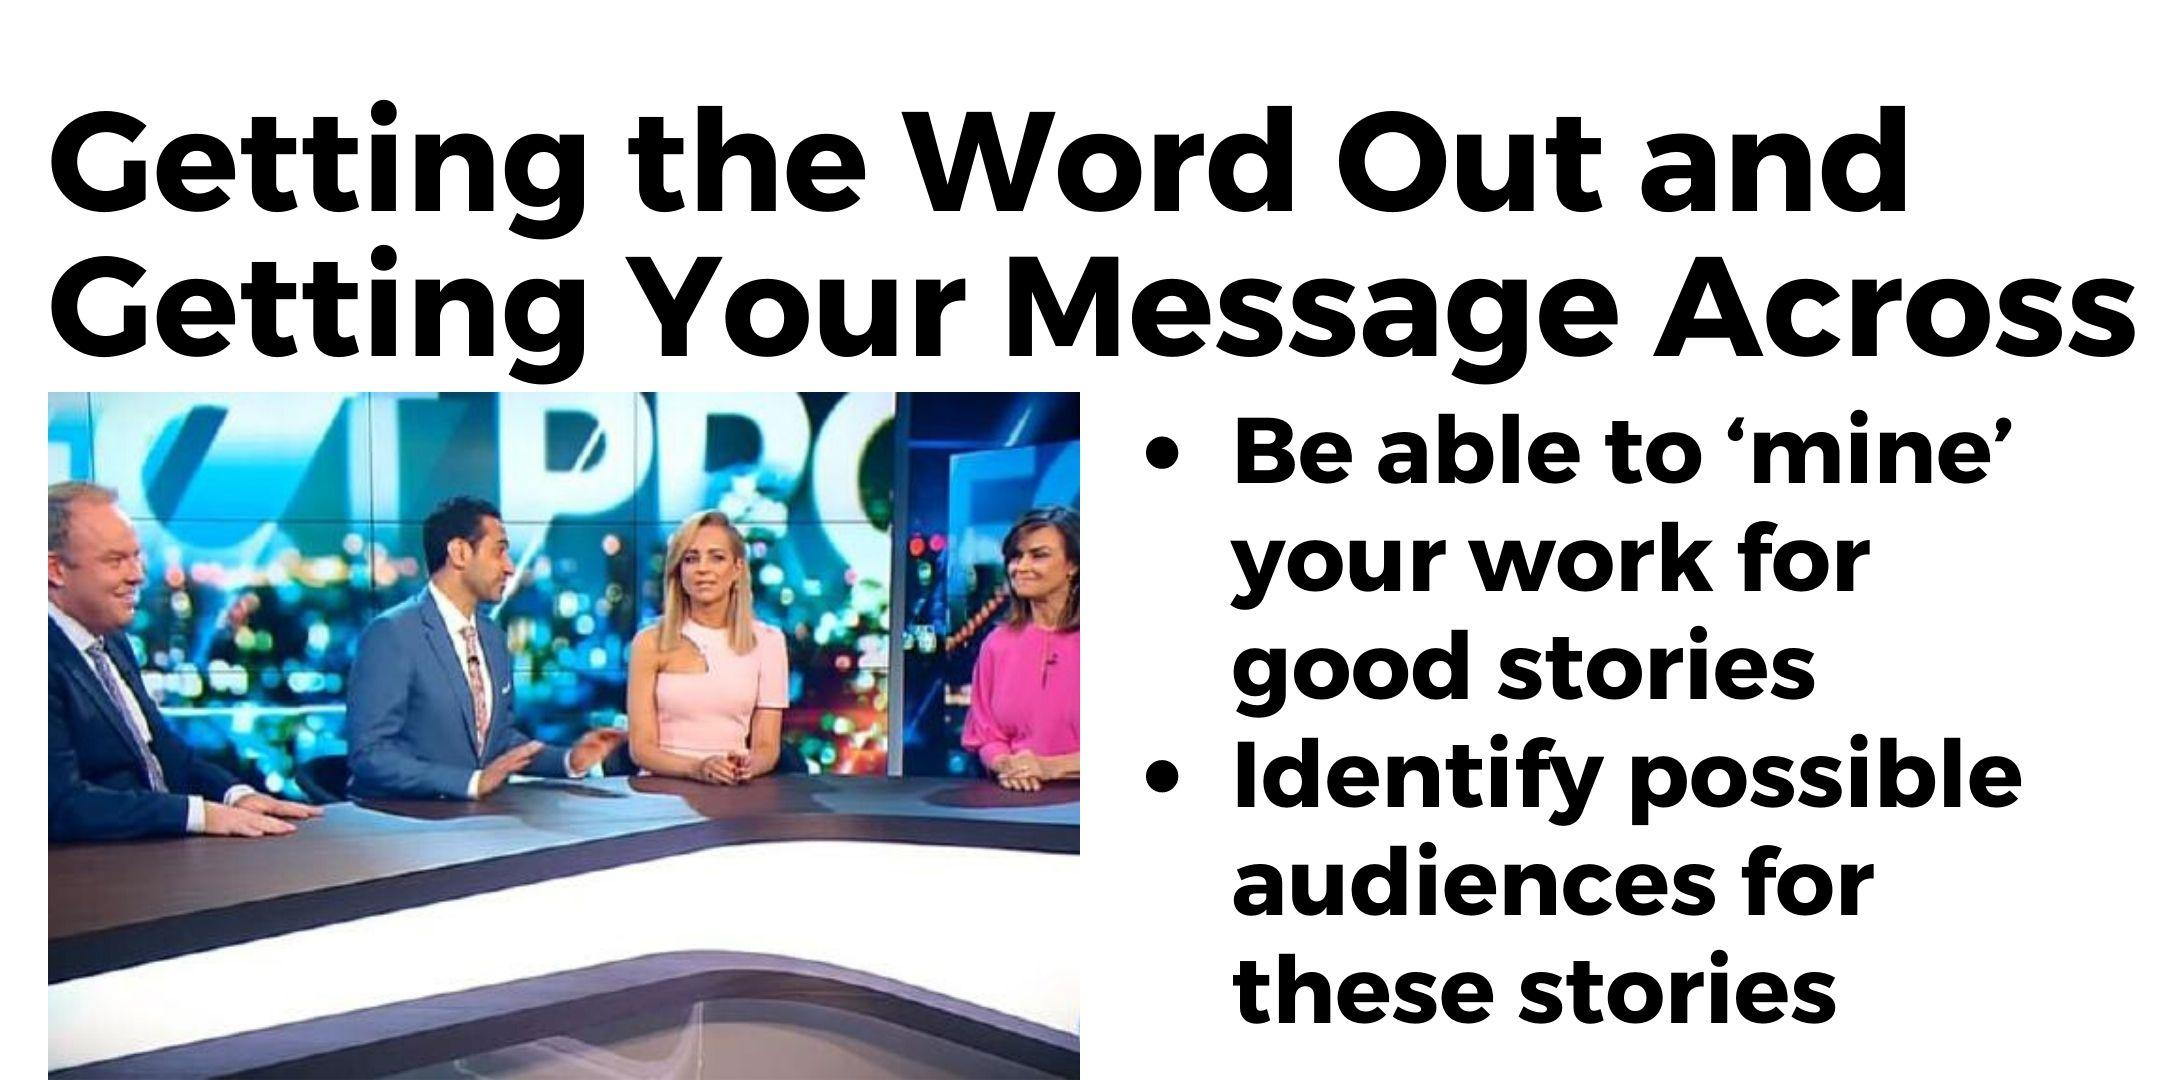 Getting the Word Out and Getting Your Message Across